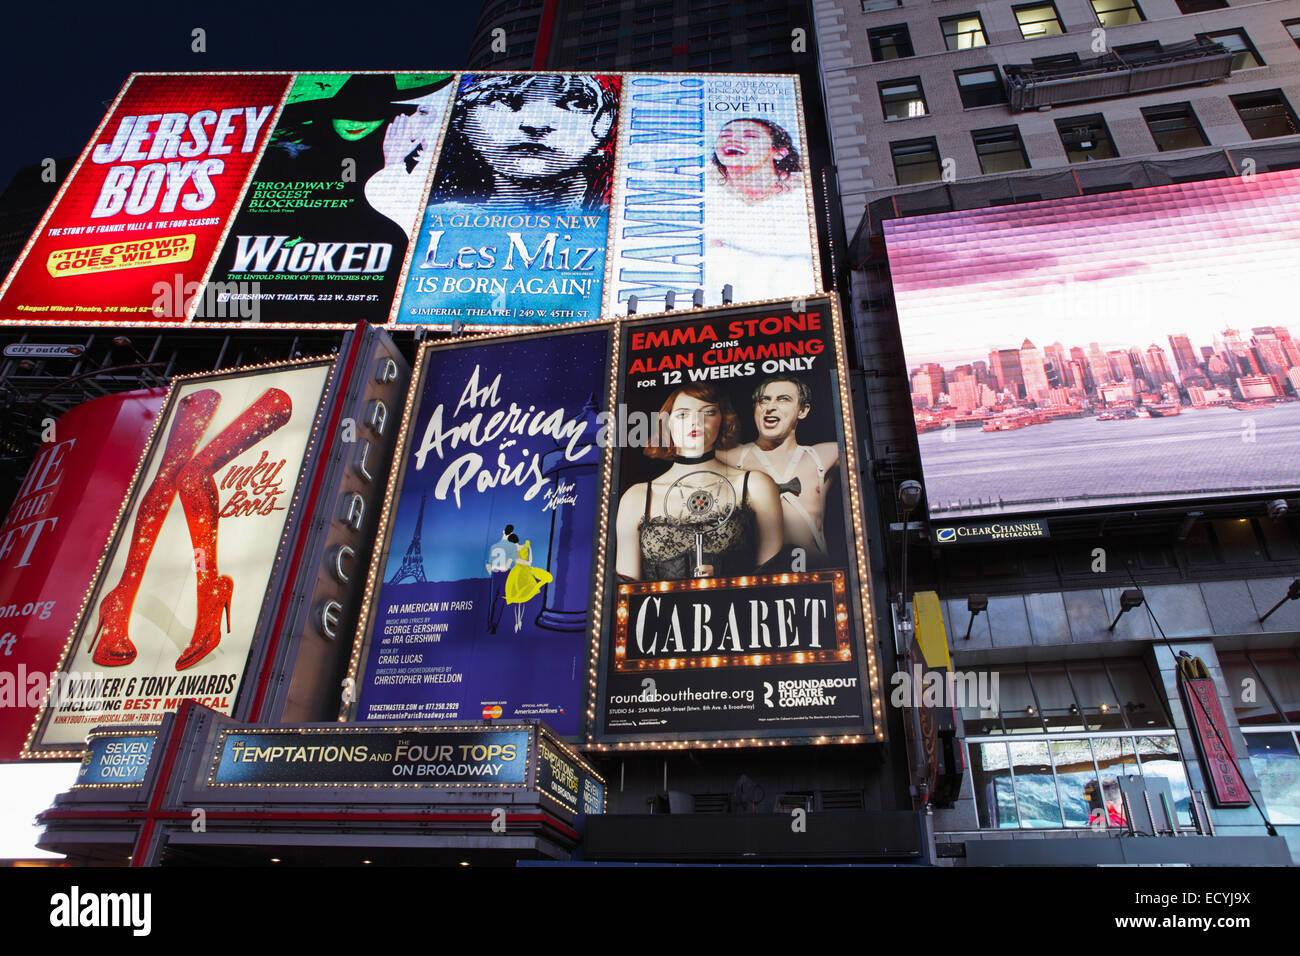 Electronic billboards in Times Square New York advertising theatre shows - Stock Image